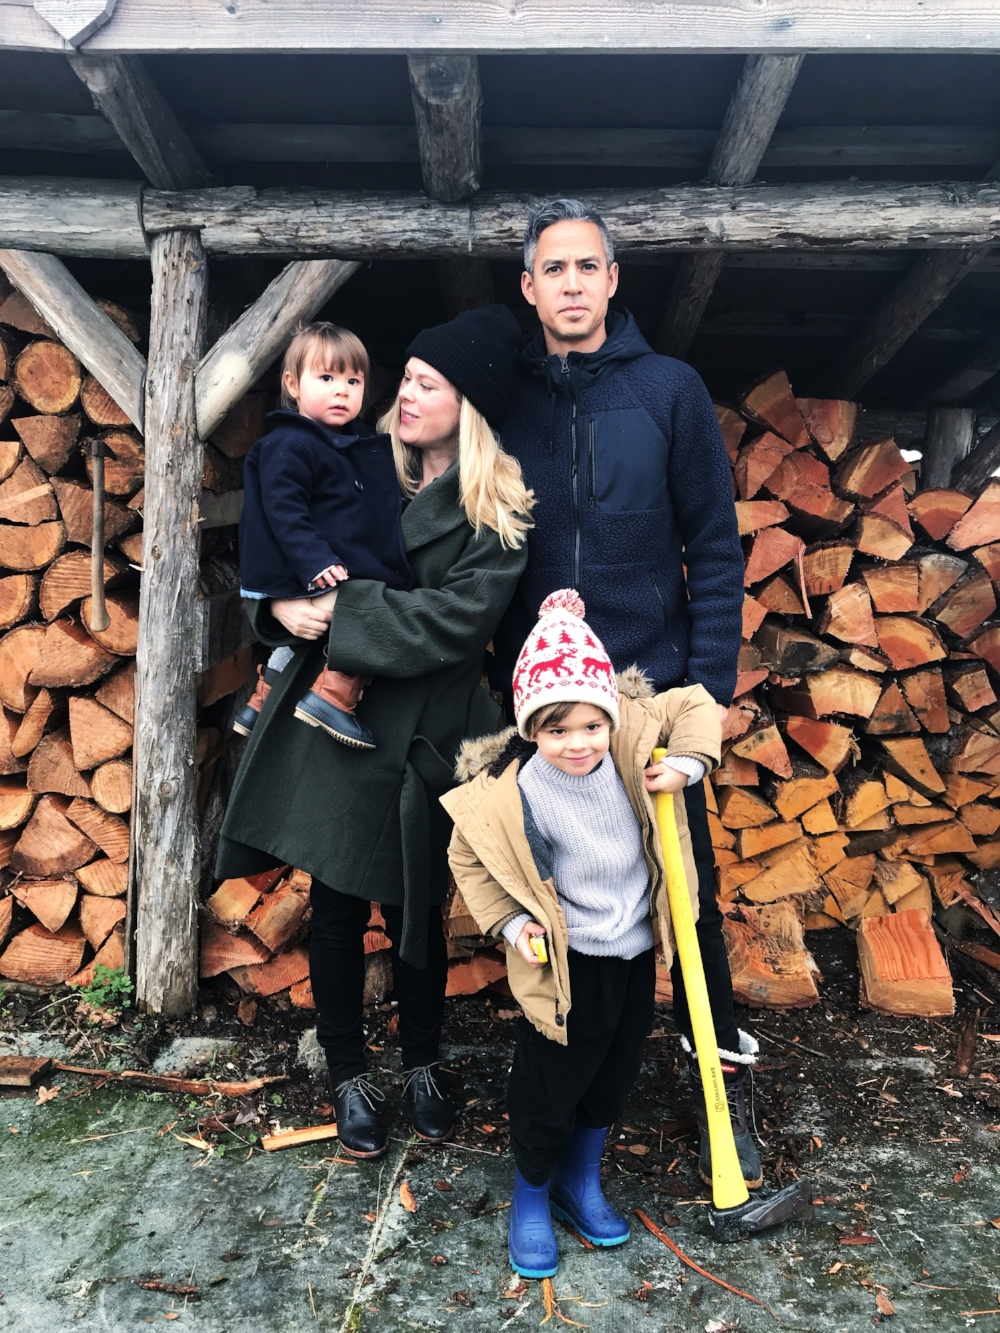 family photo-op in front of the wood pile